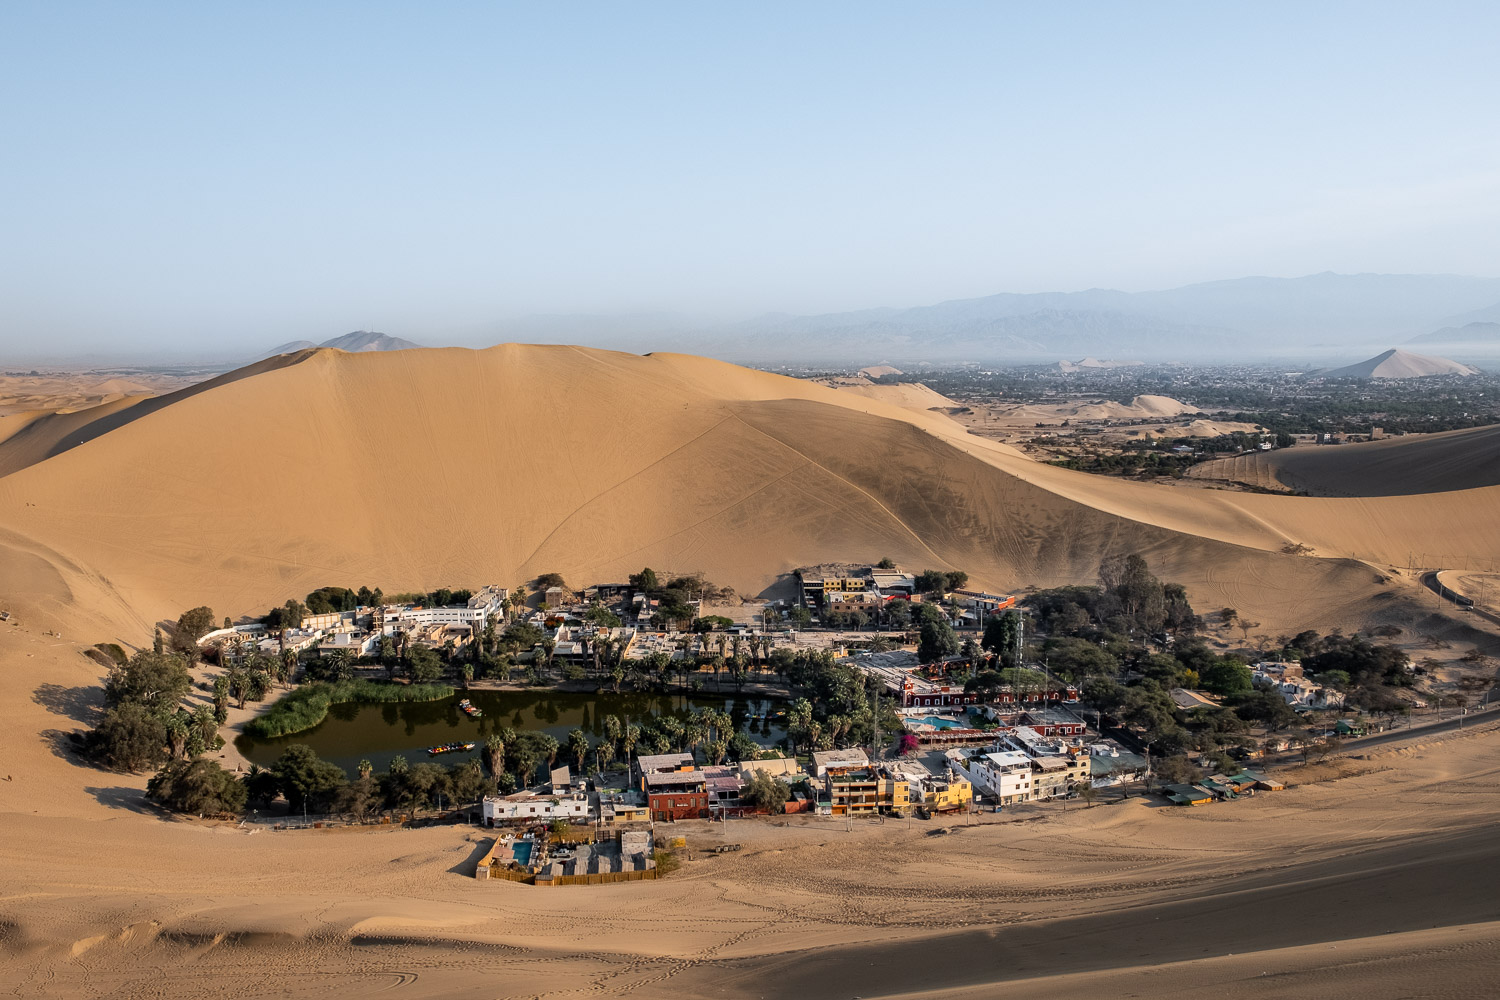 "The oasis town of Huacachina from the top of a sand dune, Peru. Travel photography and guide by © Natasha Lequepeys for ""And Then I Met Yoko"". #peru #ica #huacachina #photoblog #travelblog #travelphotography #landscapephotography #travelitinerary #fujifilm #sanddunes #desert #sunset #sandboarding #streetfood #foodphotography #oasis #backpacker #winery #travel #huacachinatours"